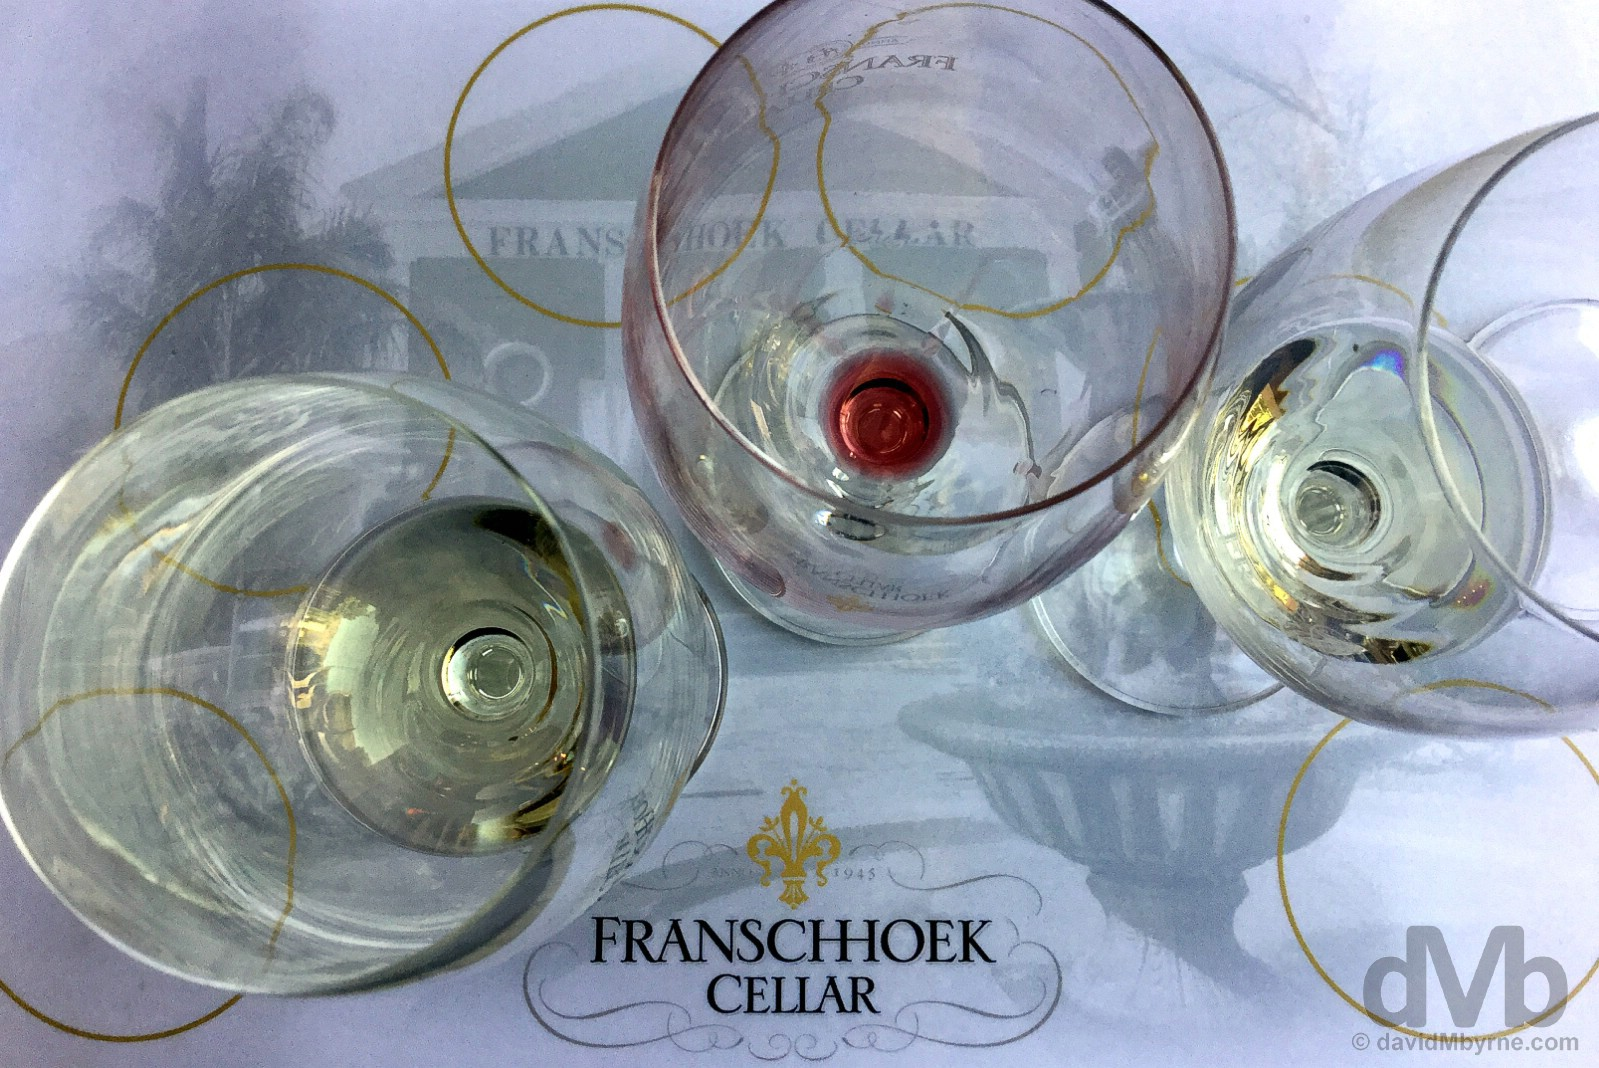 Wine tasting at the Franschhoek Cellar, Franschhoek, Western Cape, South Africa. February 20, 2017.